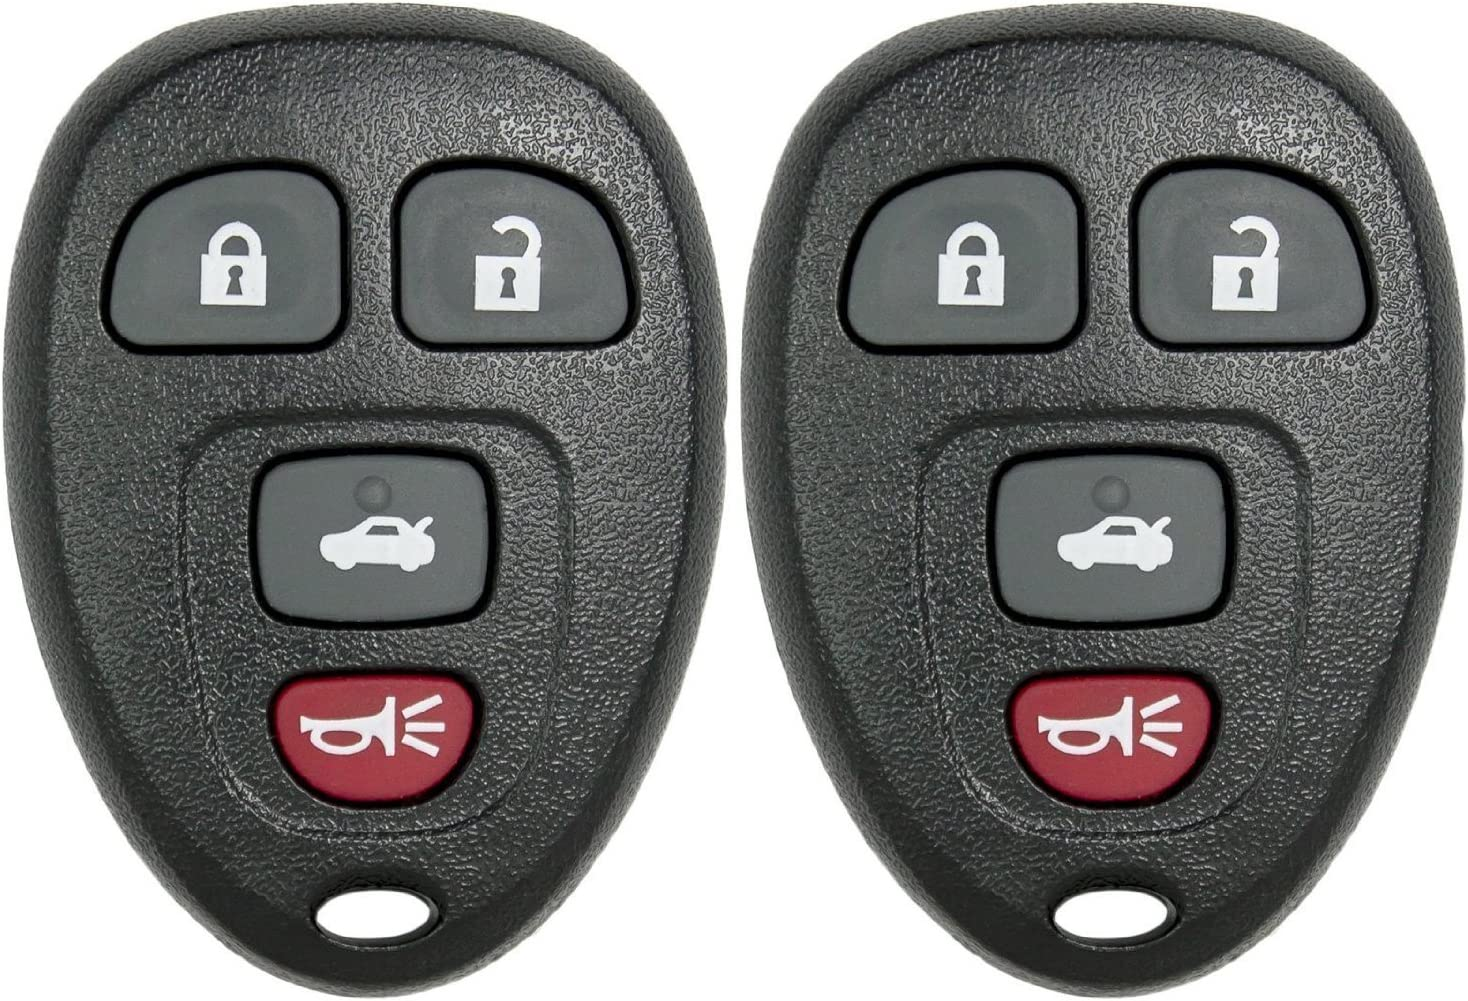 2 New Replacement Keyless Entry 4 Button Remote Car Key Fobs for Select GM Chevrolet Pontiac Saturn and Buick Using 15252034 AmericanAutomotiveSupply